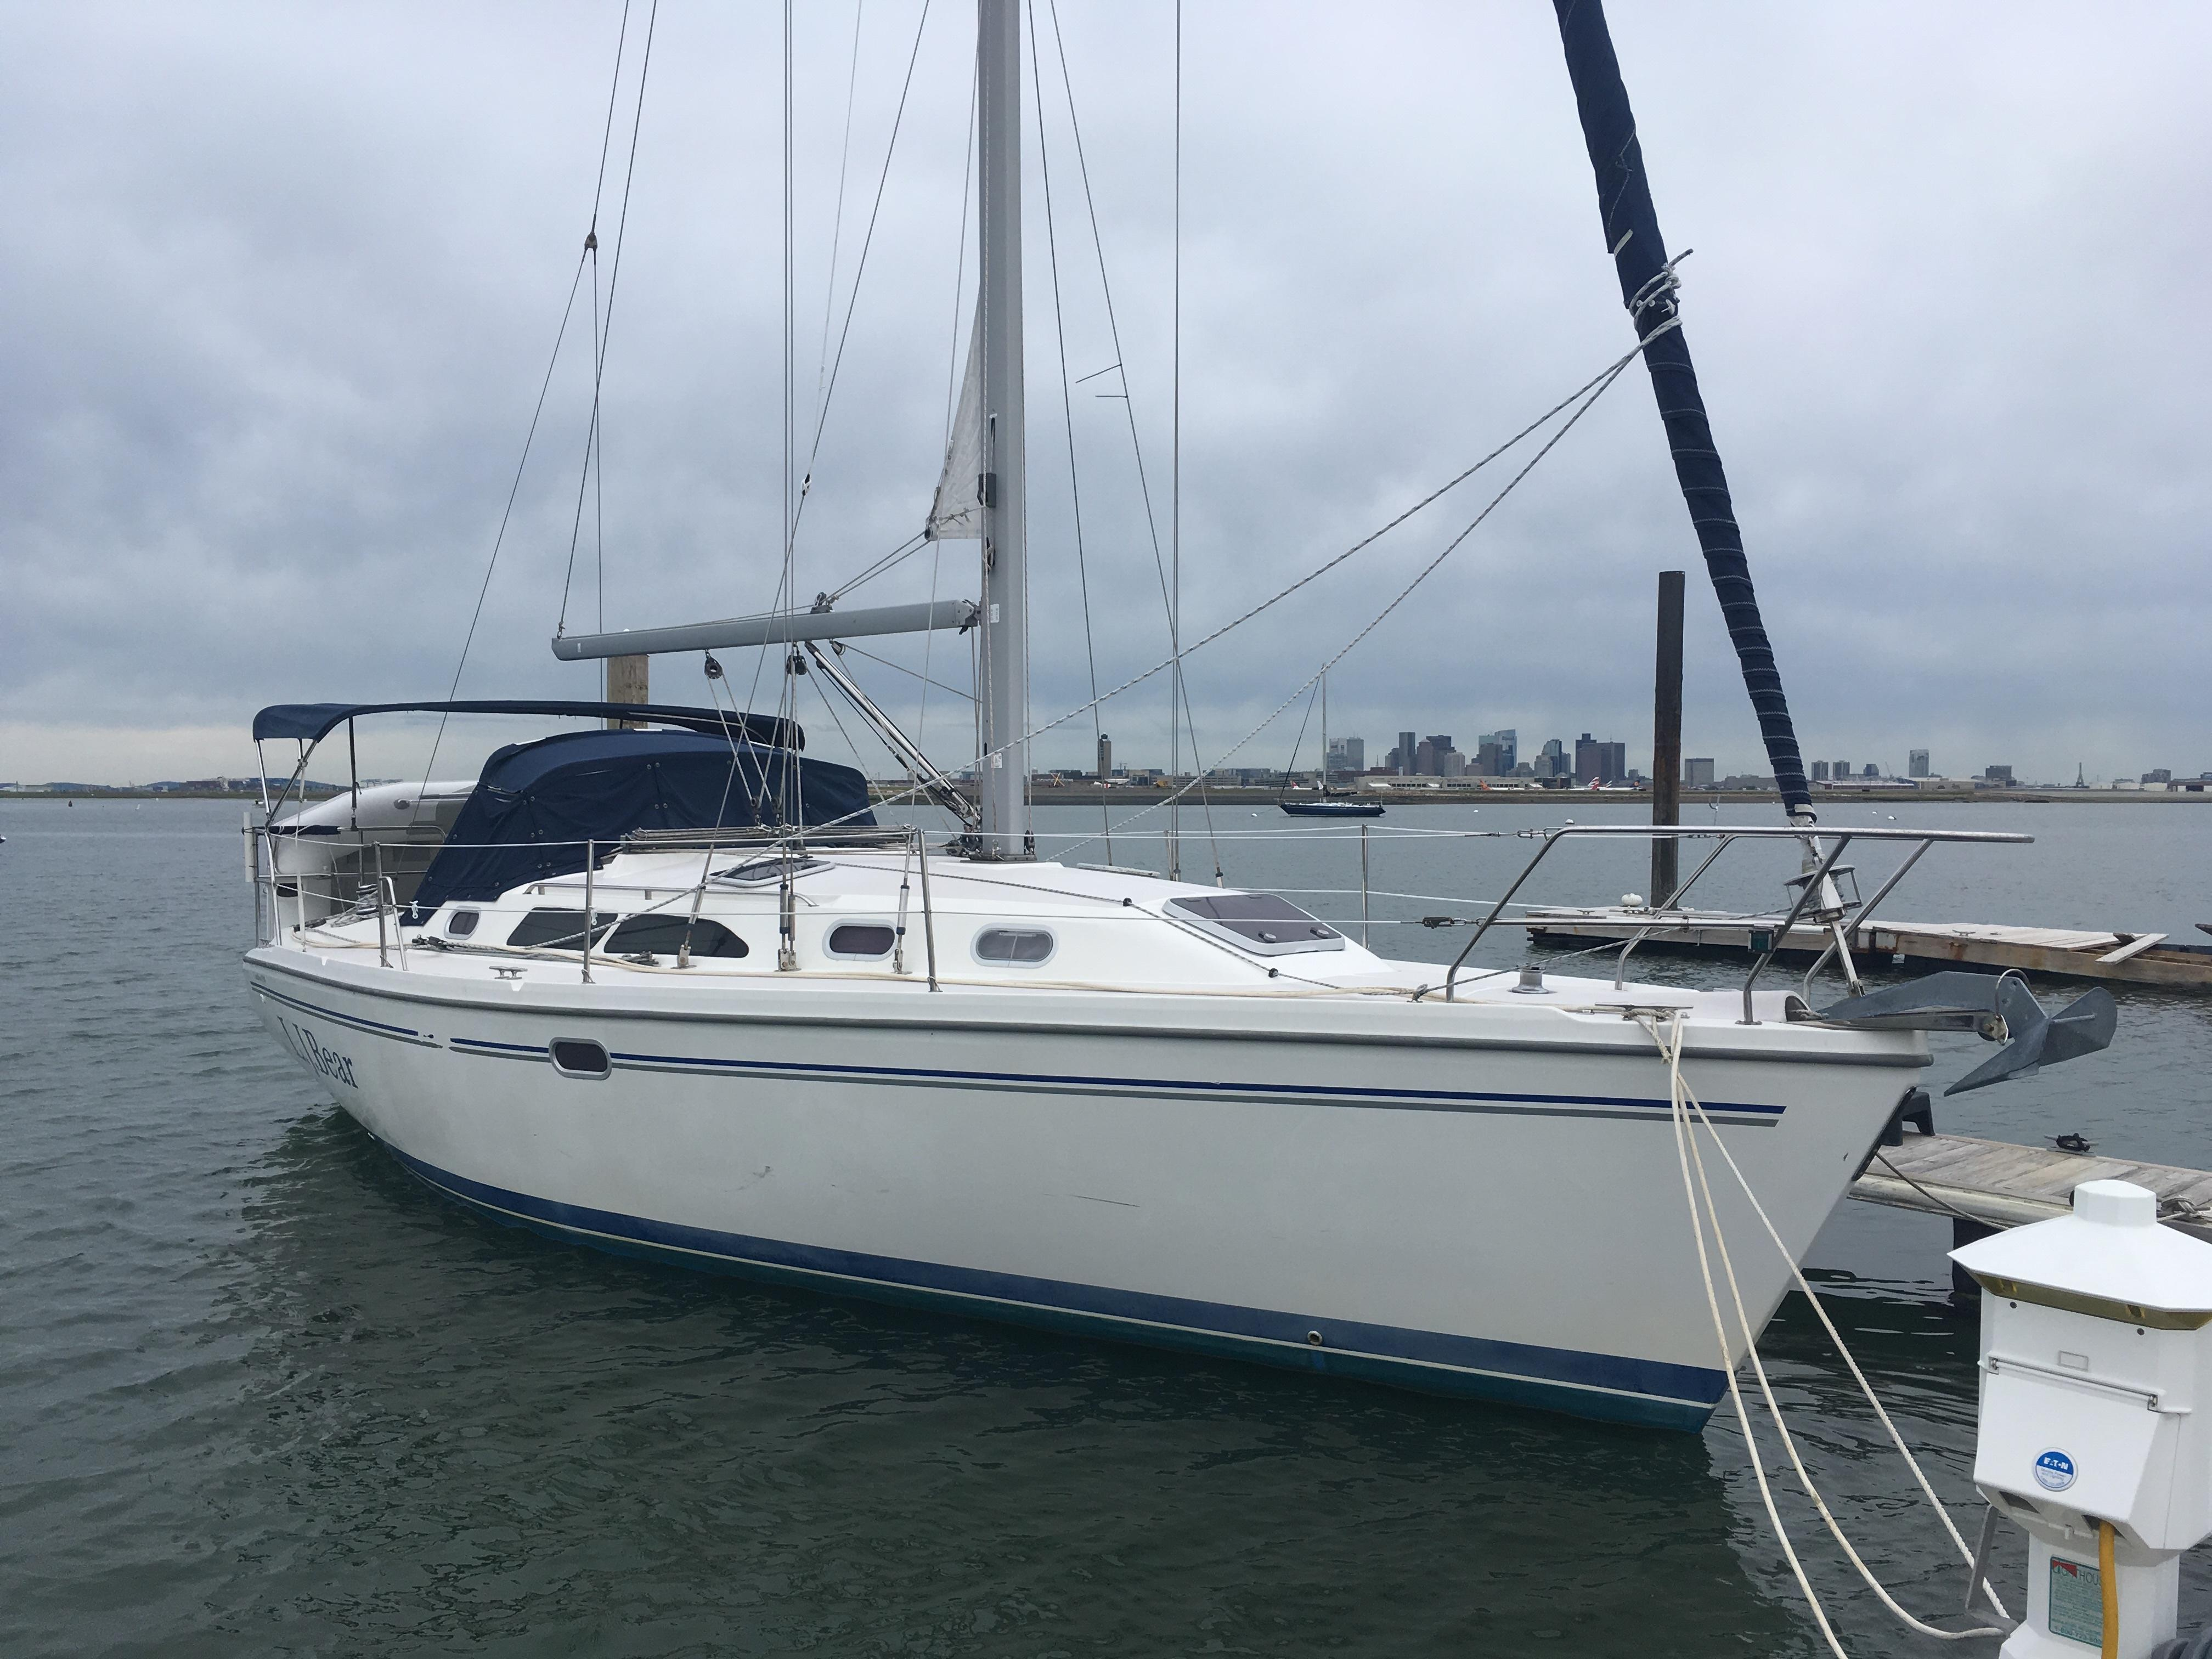 2003 catalina 350 sail boat for sale www yachtworld com rh yachtworld com catalina c350 owners manual Catalina 350 Inside